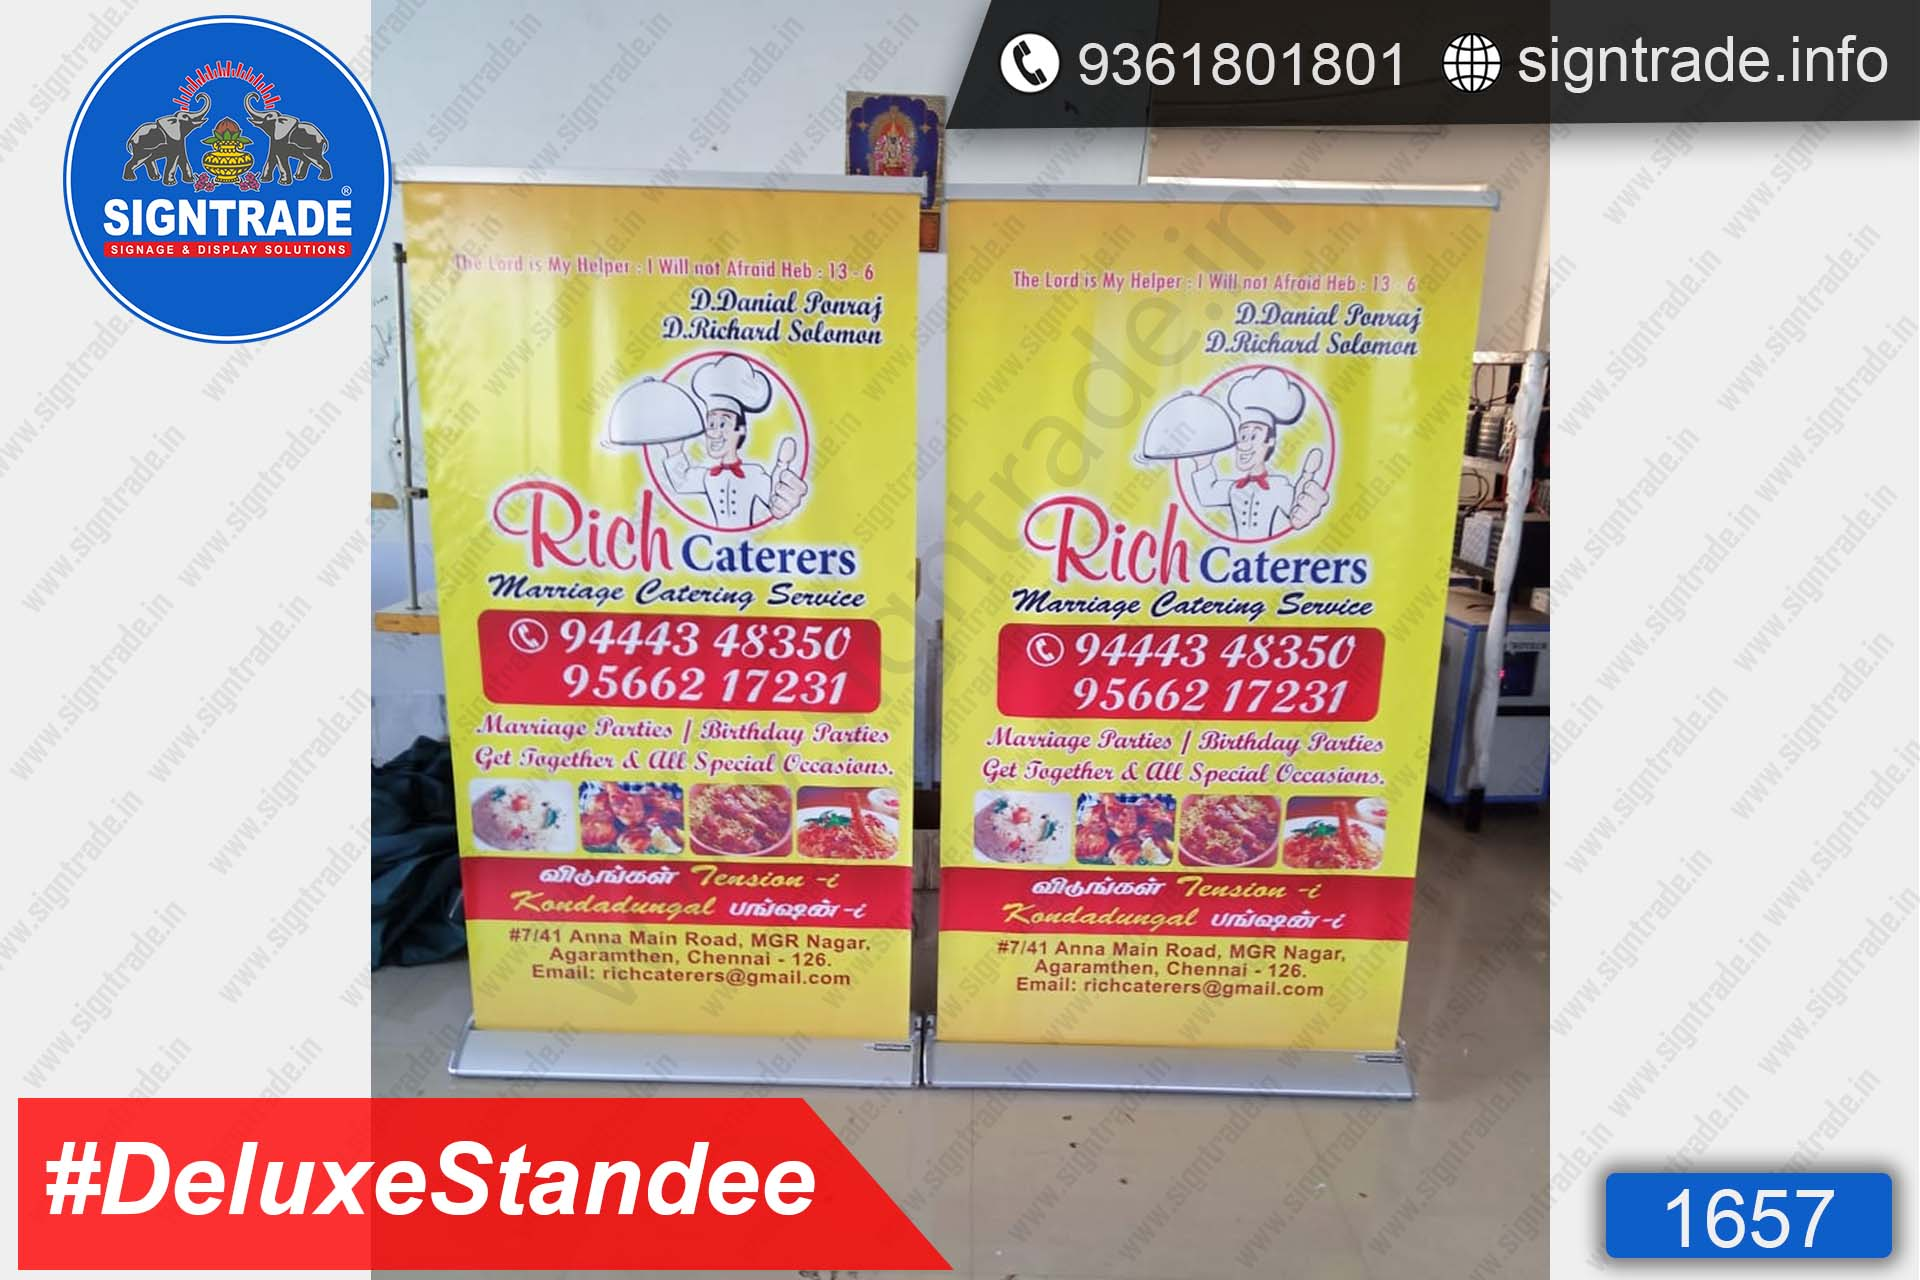 Rich Caterers - Deluxe Rollup Banner Stand - SIGNTRADE - Rollup Banner Stand Manufactures in Chennai